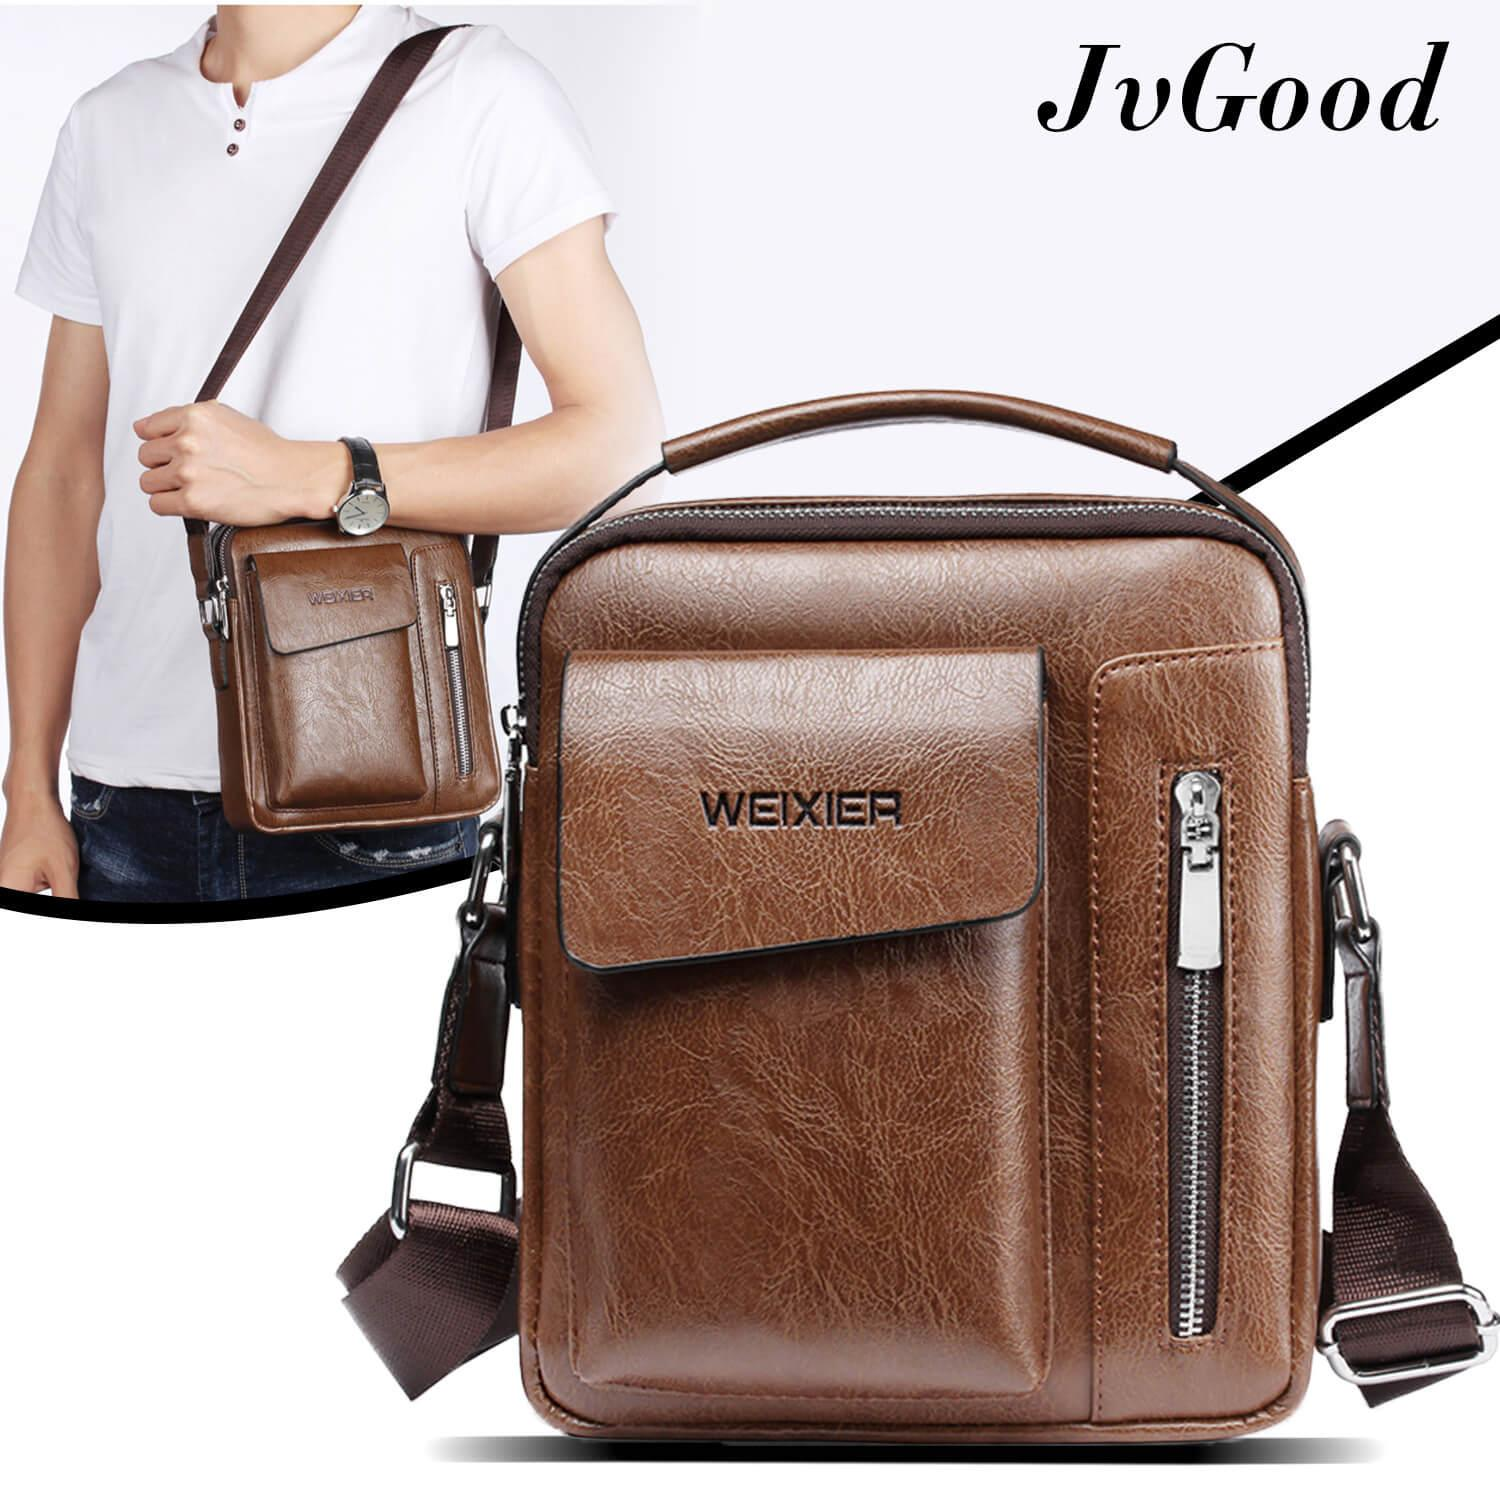 Jvgood Messenger Bags Pu Leather Sling Shoulder Bag Male Travel Casual Crossbody Small Flap Handbags